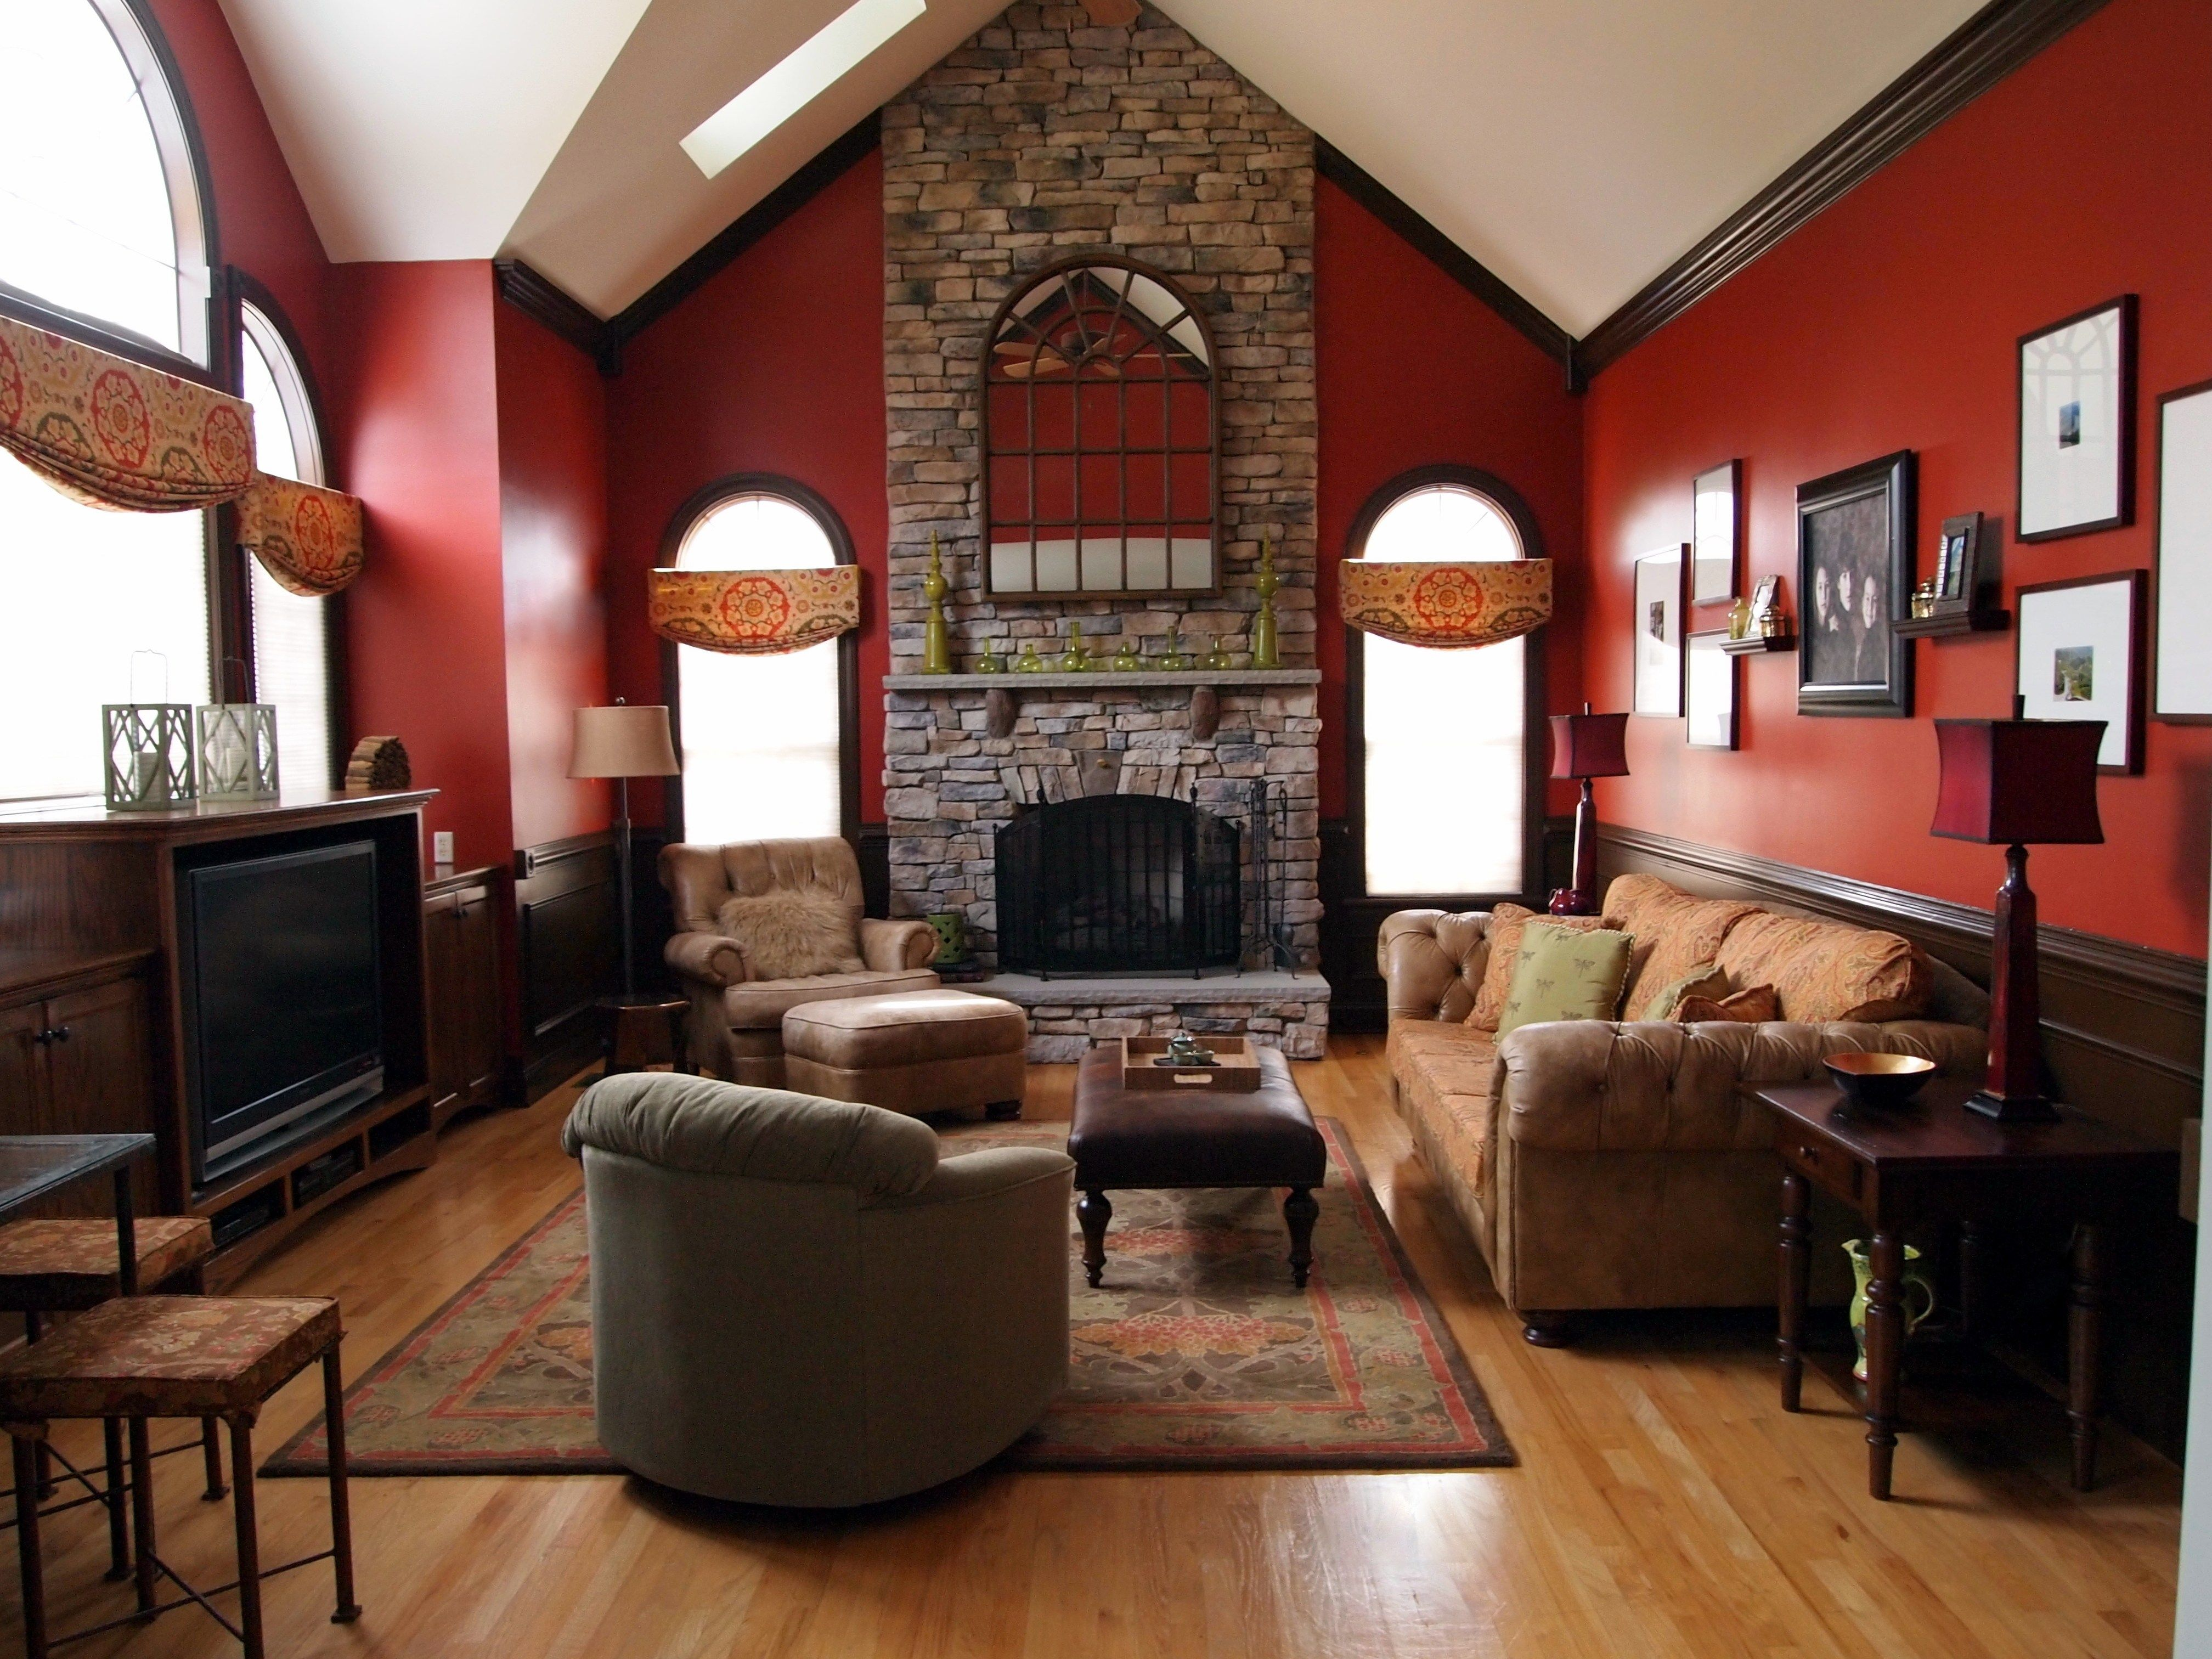 Small Living Room Ideas Fireplace Tv Library Bat Southwestern Primrose Yellow Country Dining Decorating